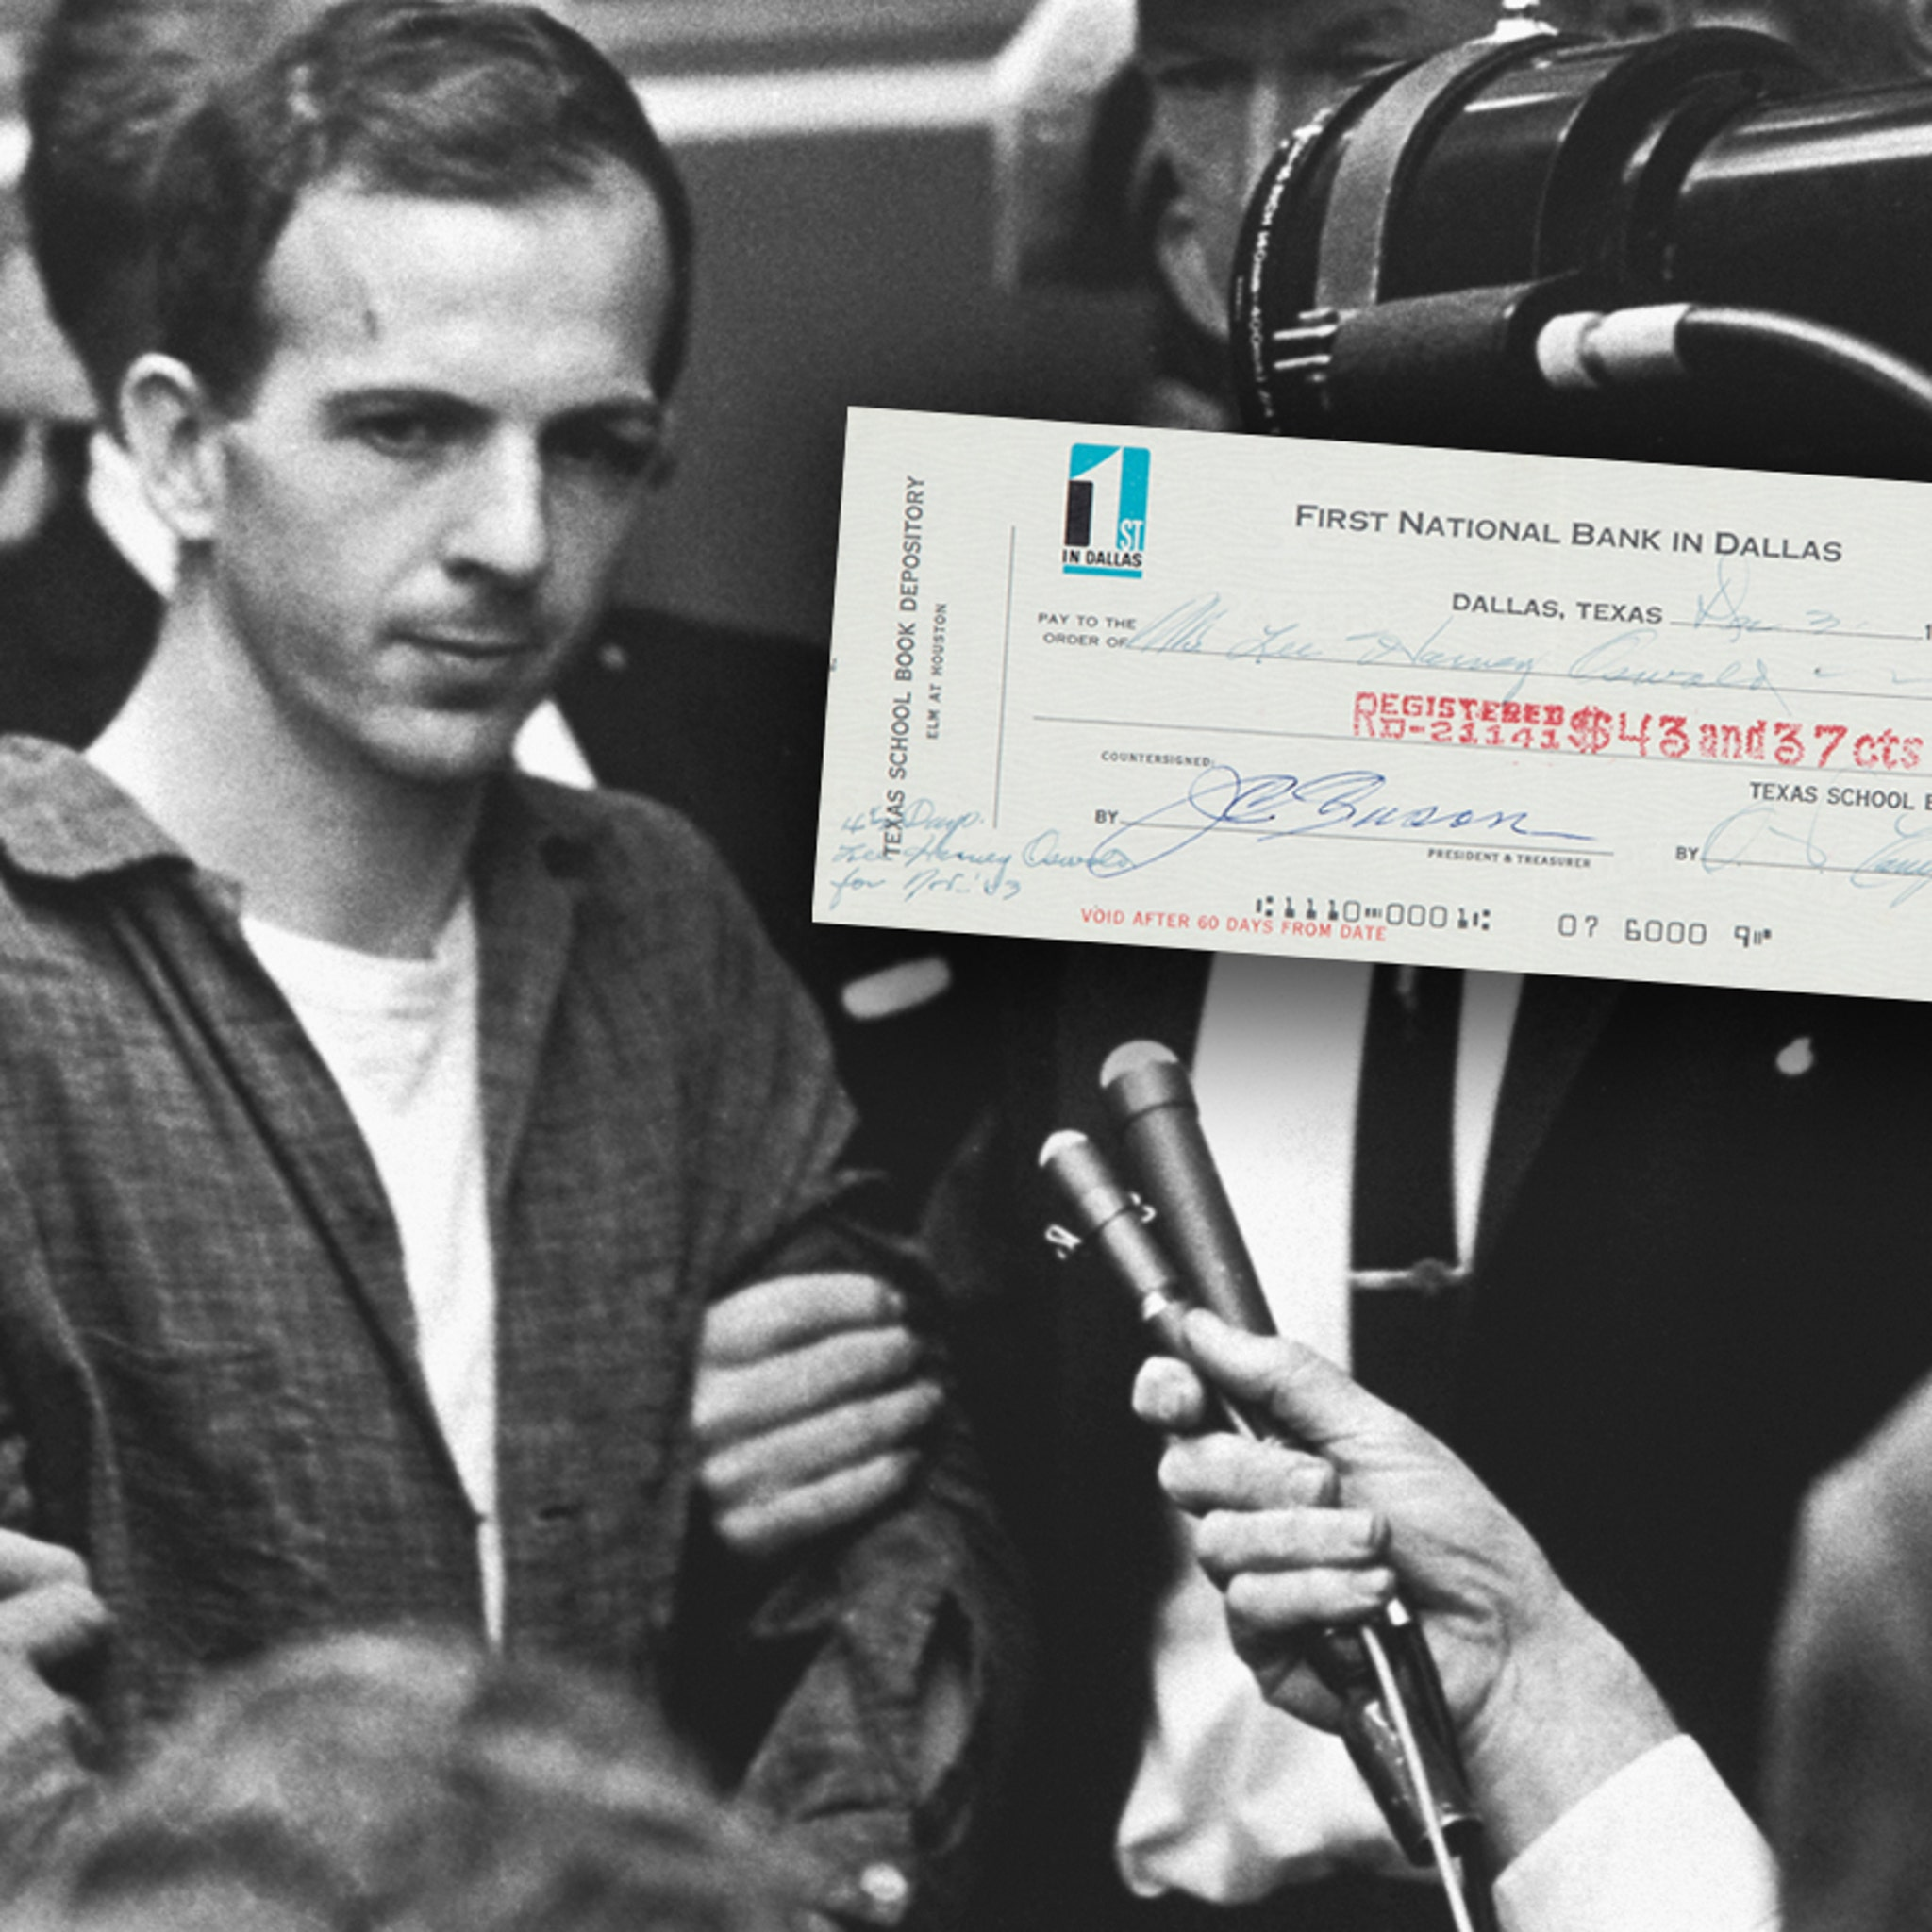 Lee Harvey Oswald's Final Uncashed Paycheck, Up for Auction